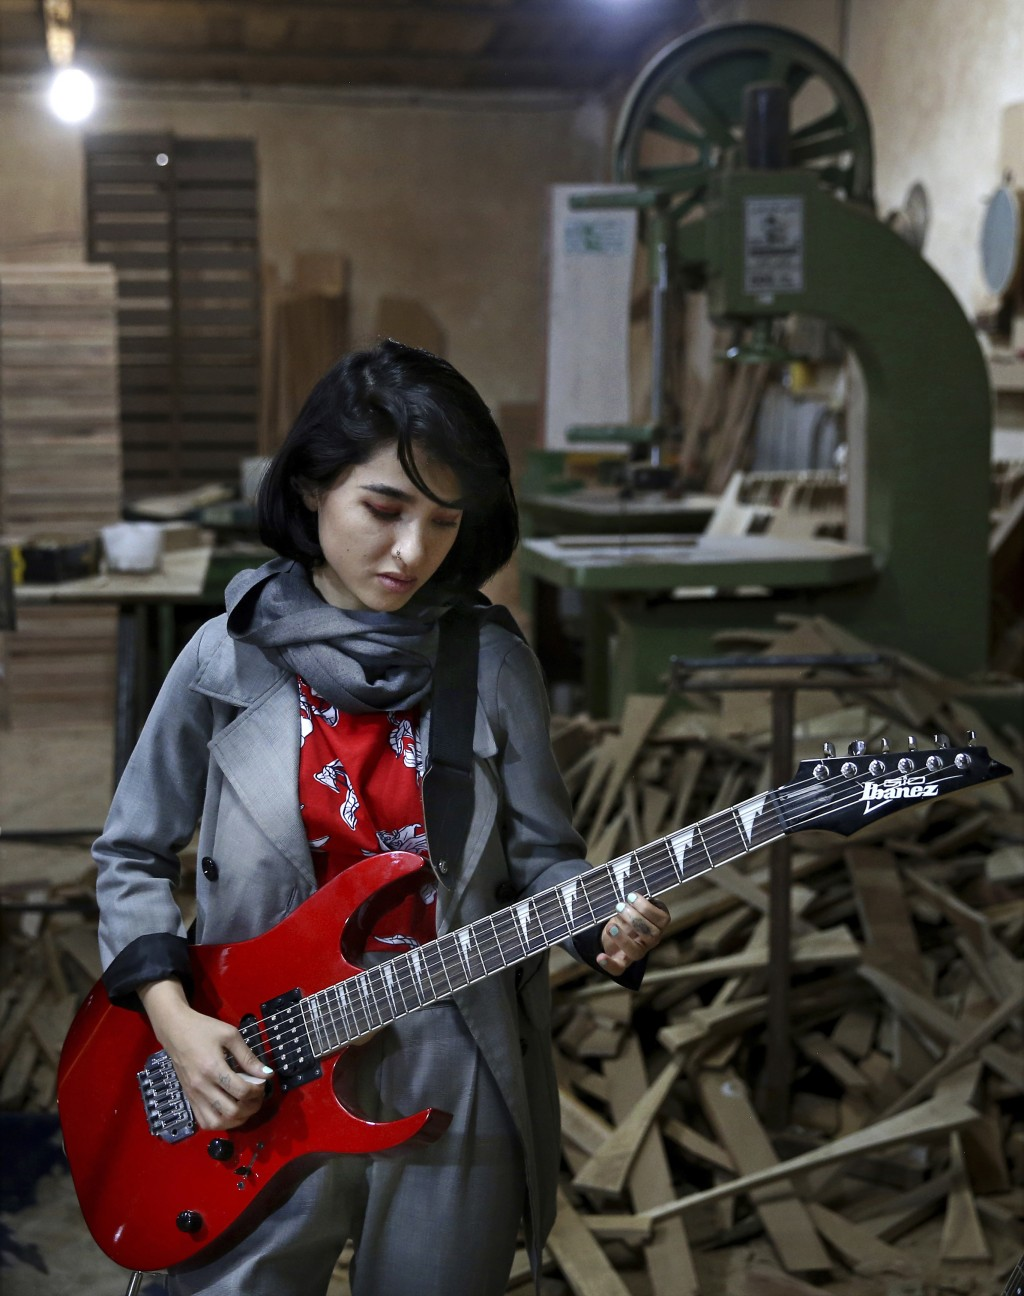 In this July 20, 2018 photo, Afghan musician Soraya Hosseini, a member of the Arikayn rock band, plays guitar at a furniture workshop in Eslamshahr, o...